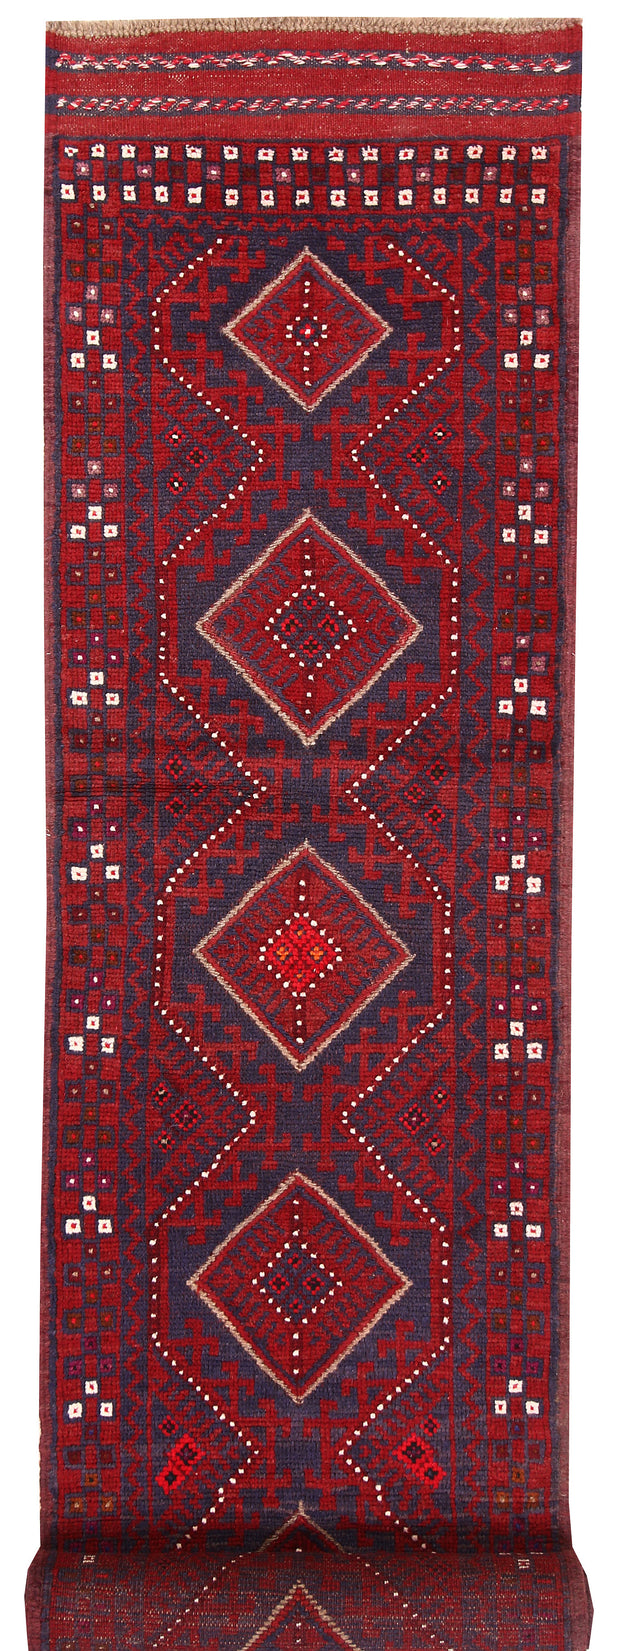 Dark Red Mashwani 2' 2 x 8' 10 - No. 63669 - ALRUG Rug Store